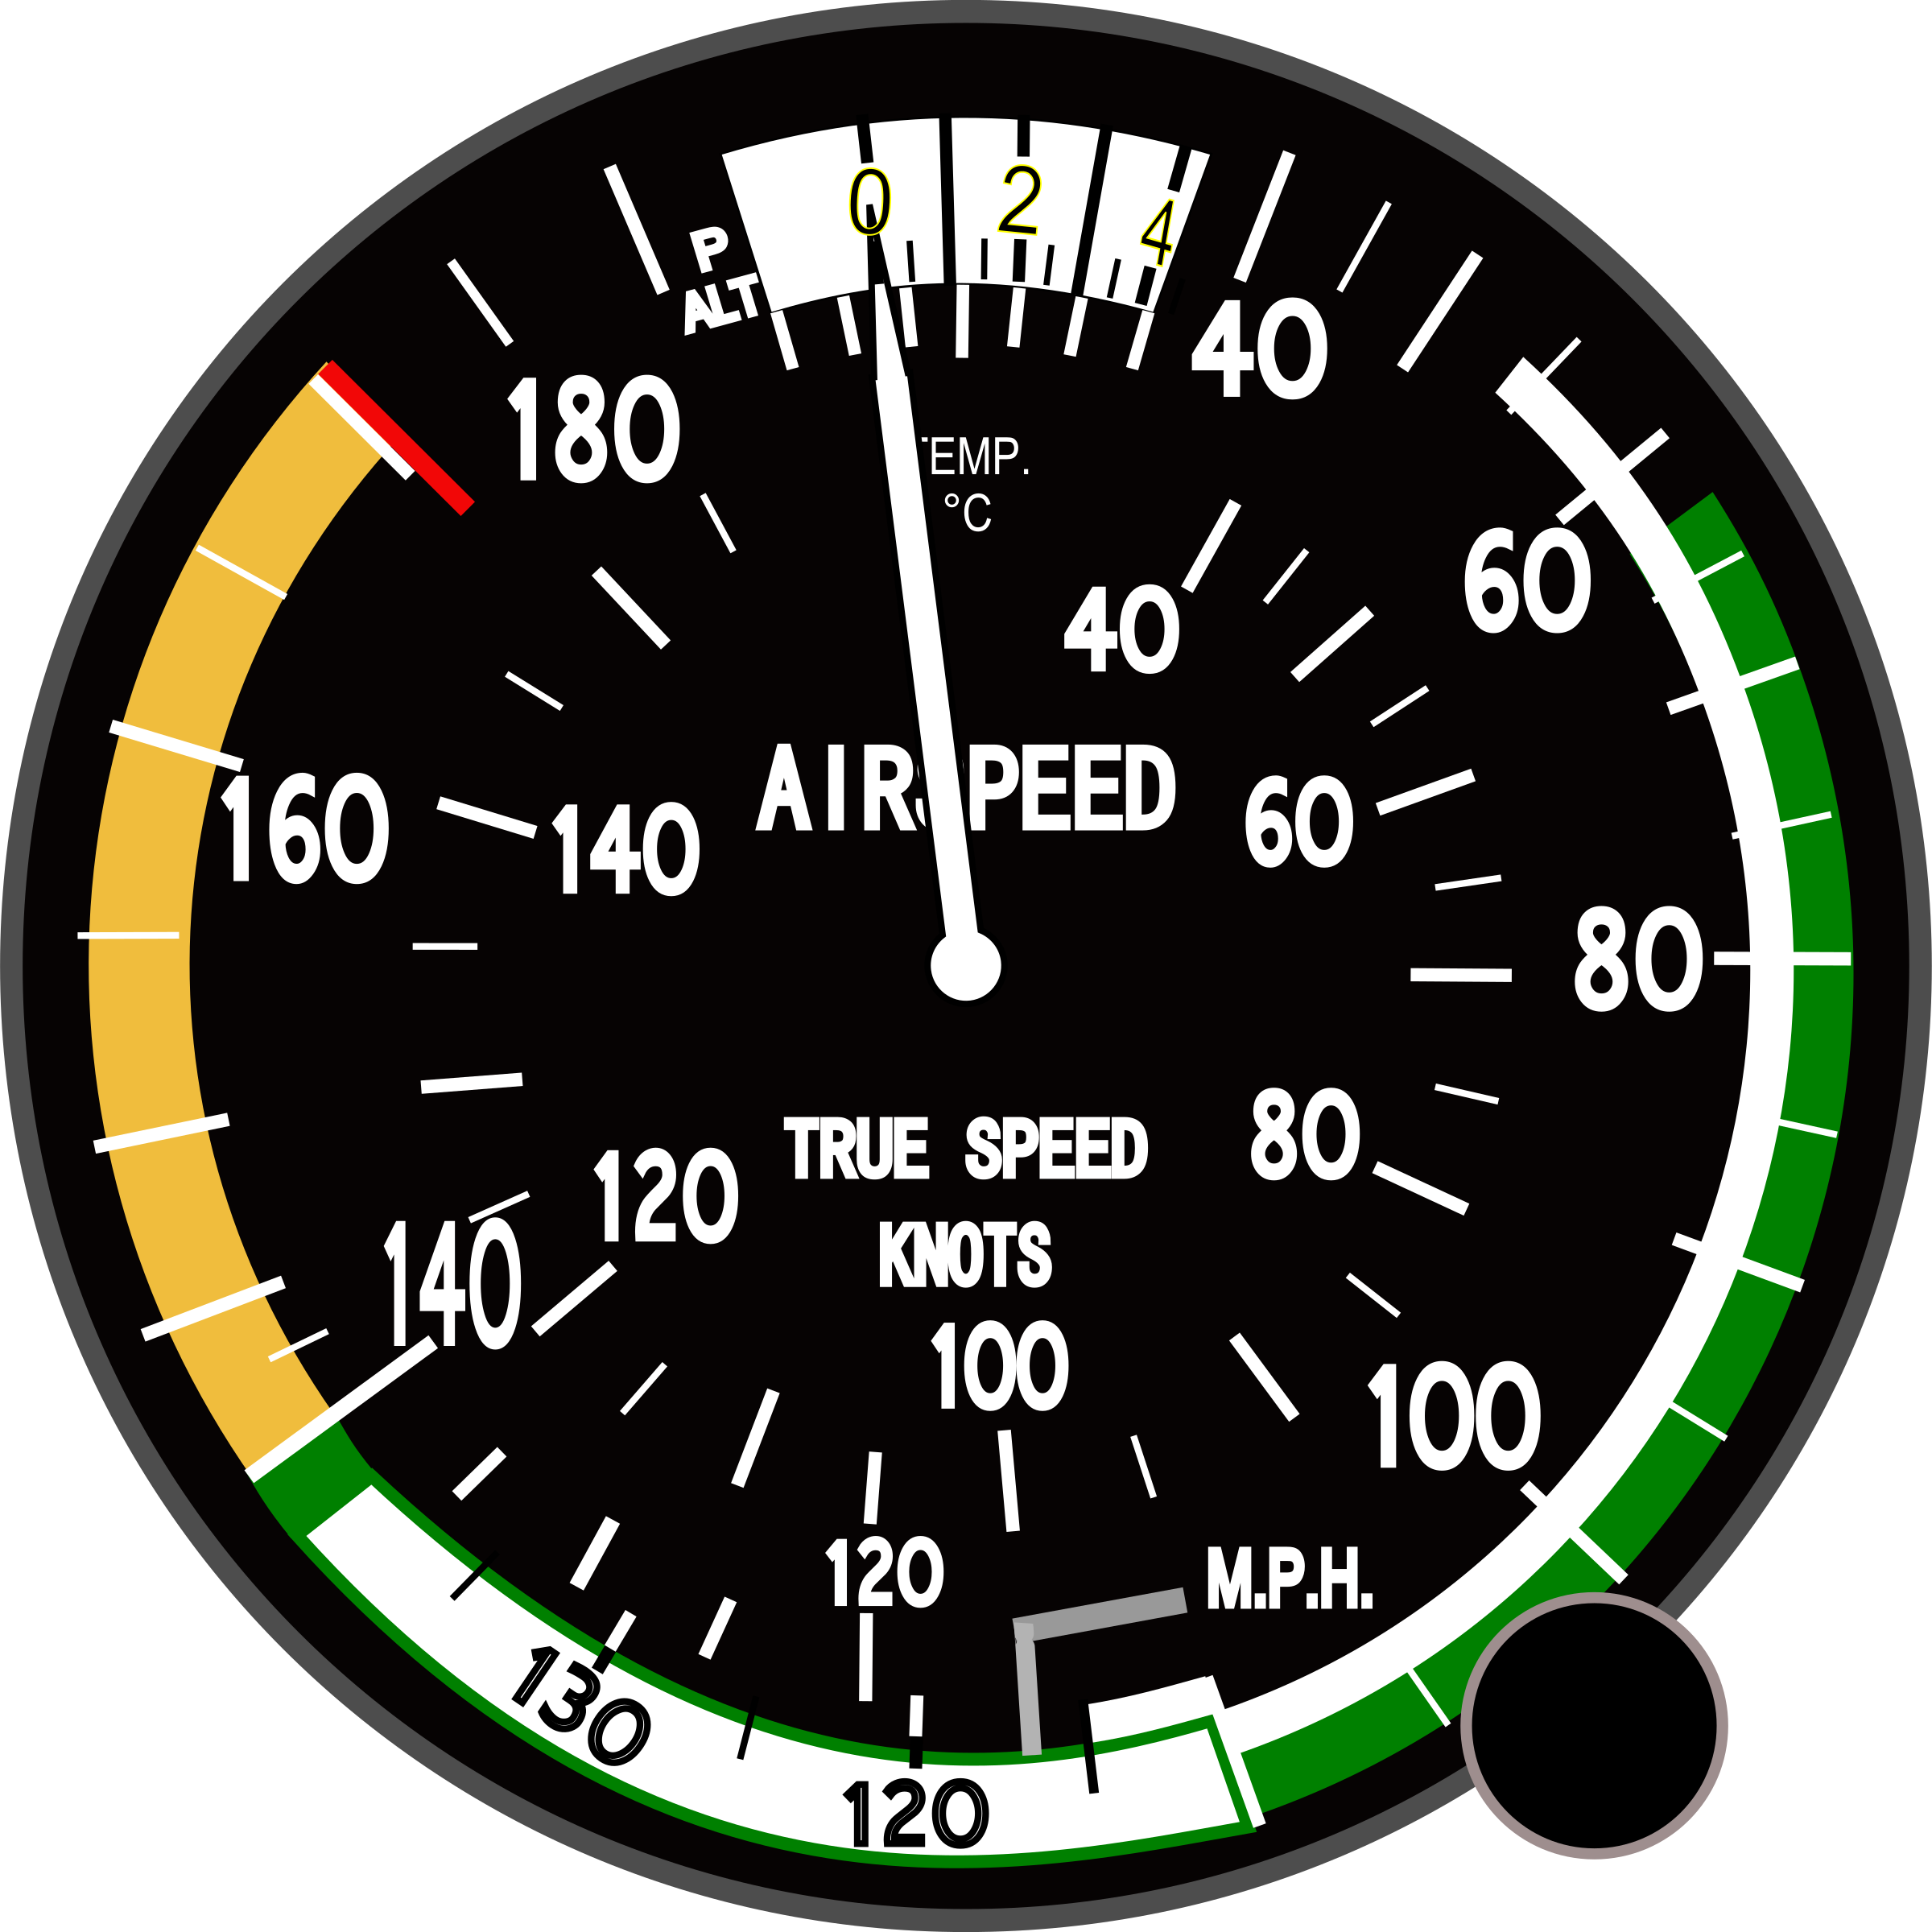 True Airspeed Indicator by Startright